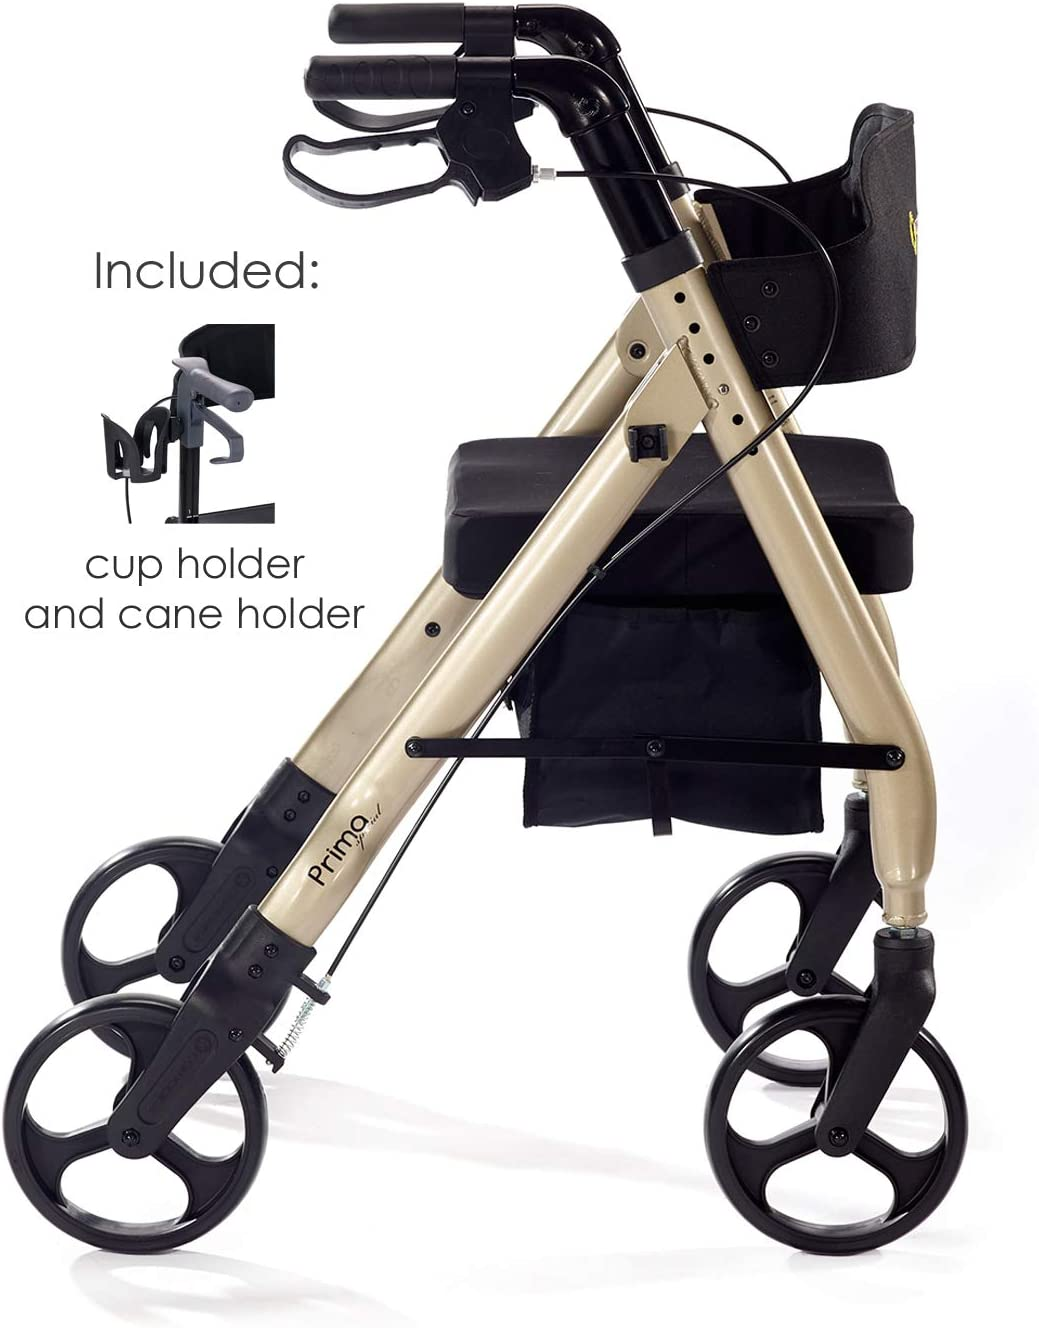 "Comodita Prima Special Rollator Walker with Exclusive 16"" Wide Ultra Comfortable Orthopedic Seat, Removable Cup Holder and Cane Holder - Metallic Champagne 616-TOS0m4L"